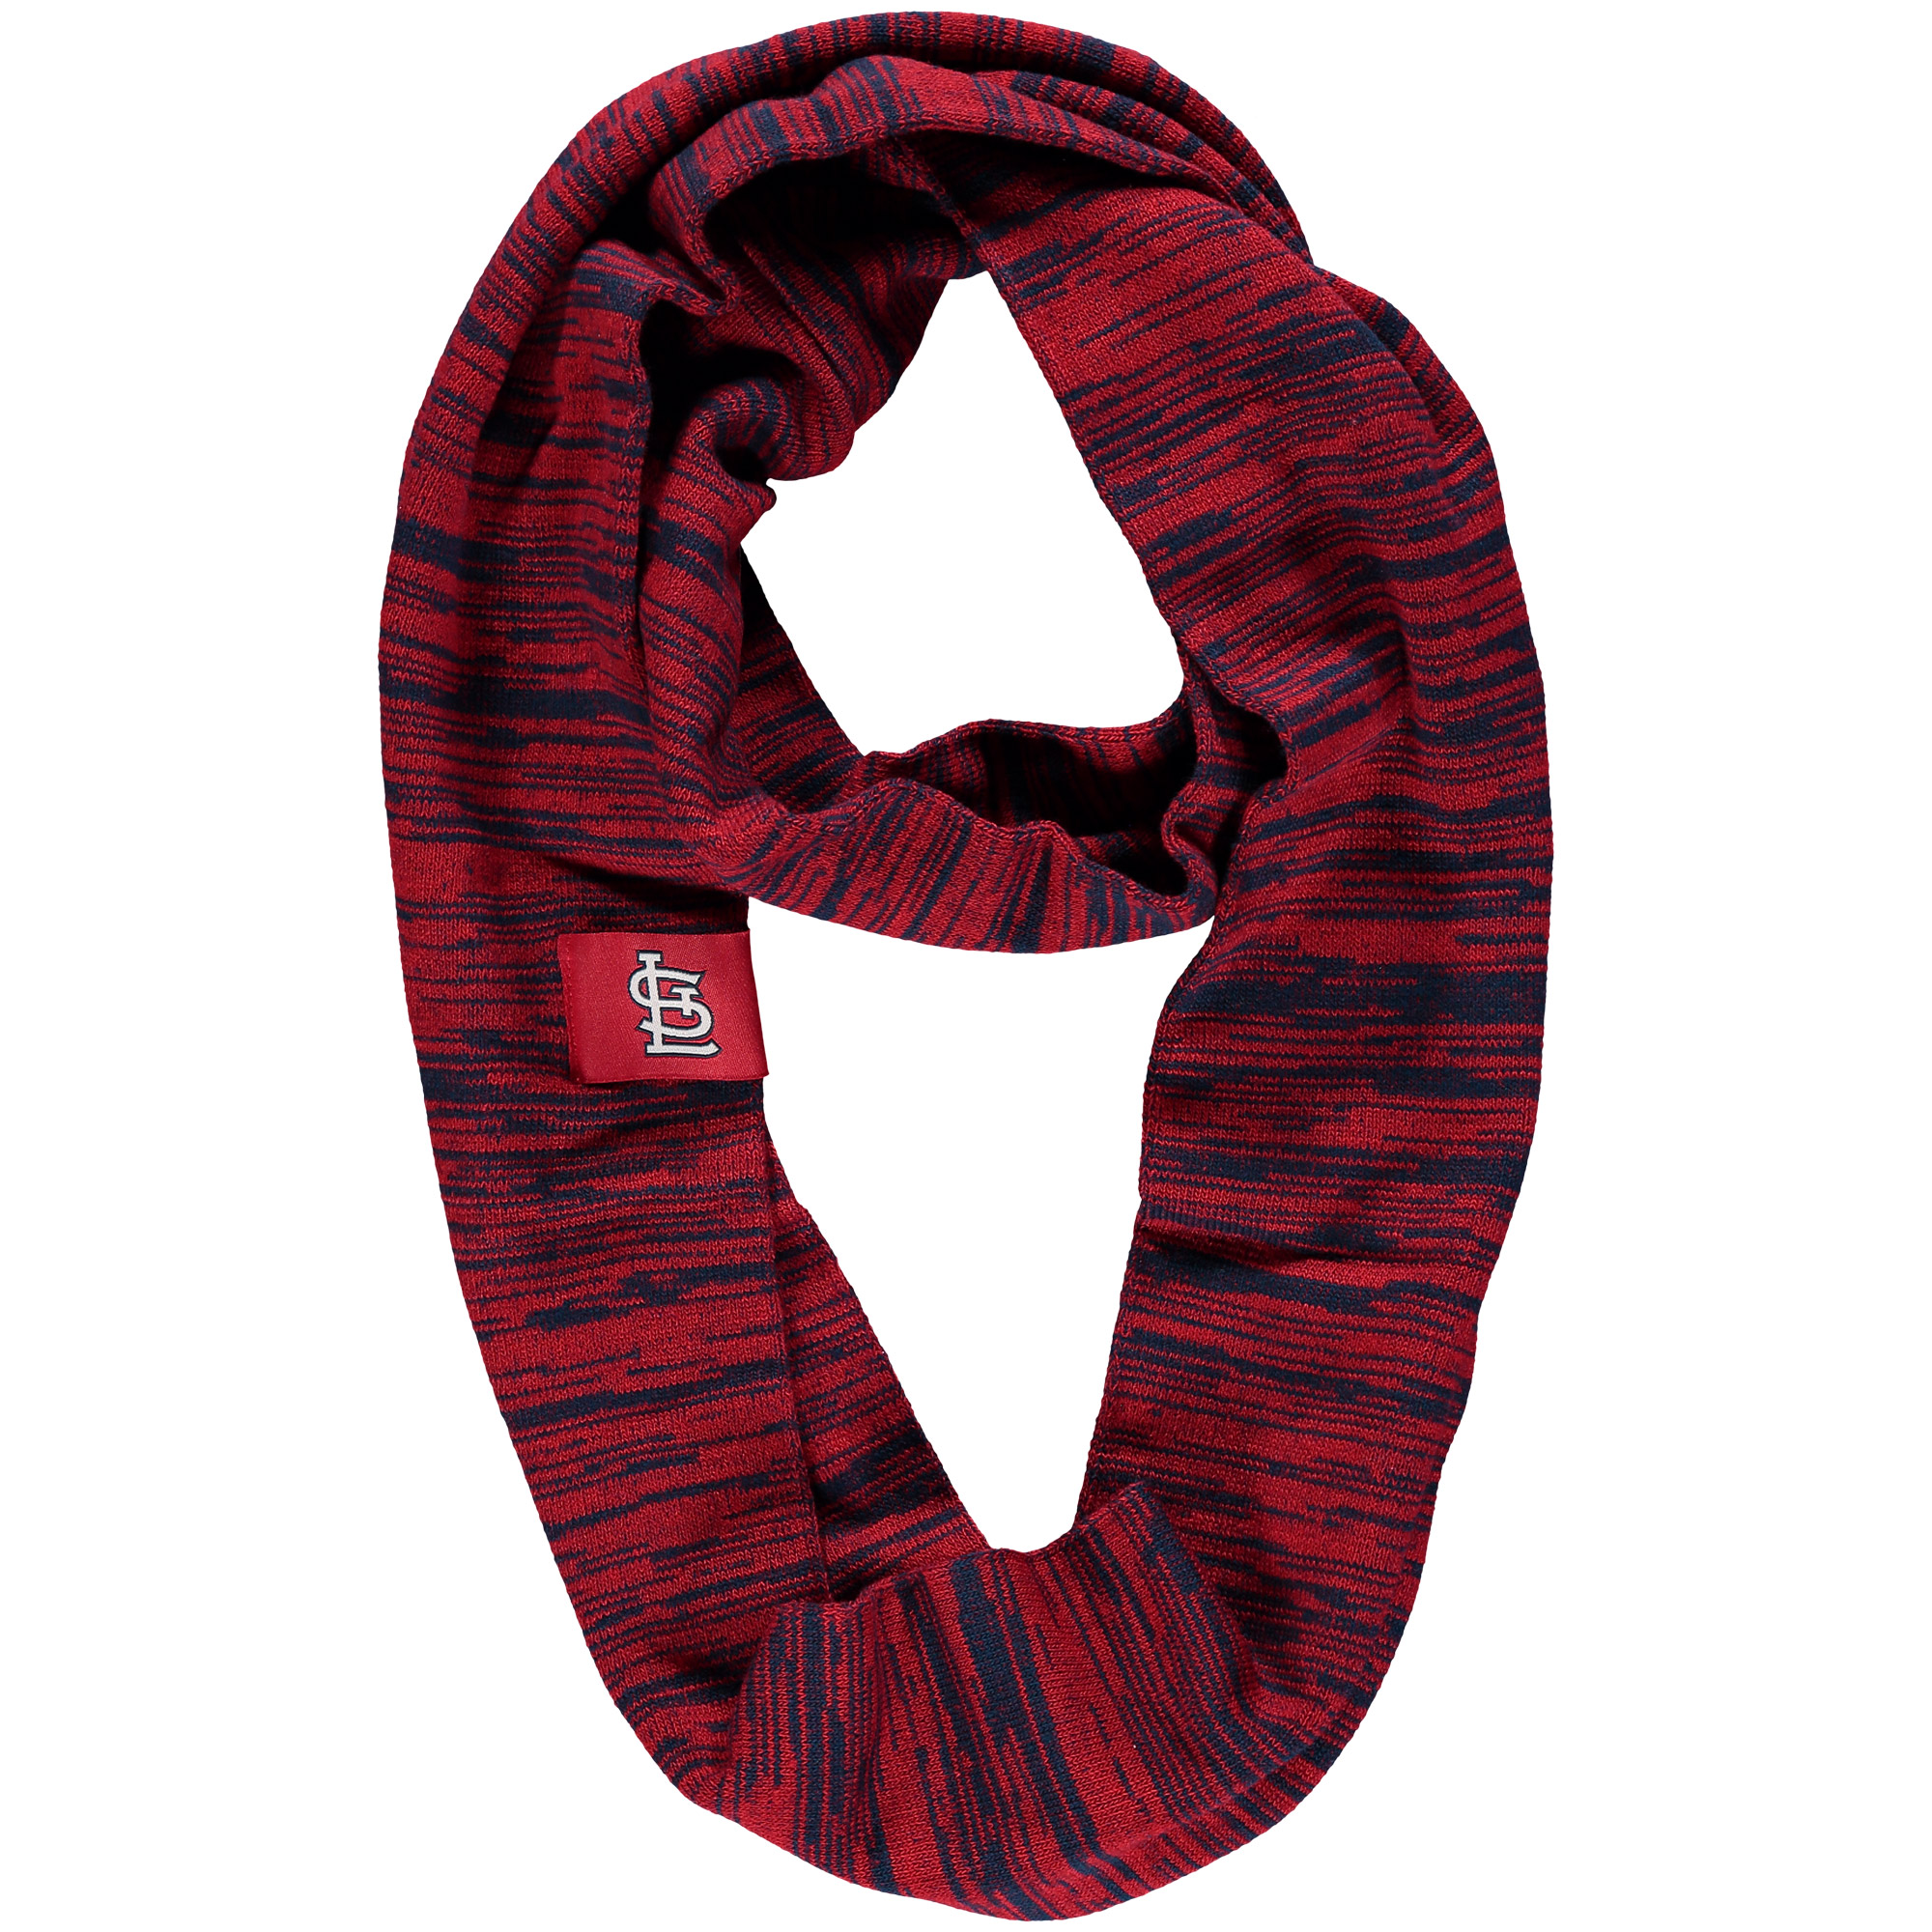 St. Louis Cardinals Colorblend Infinity Scarf - Red - No Size